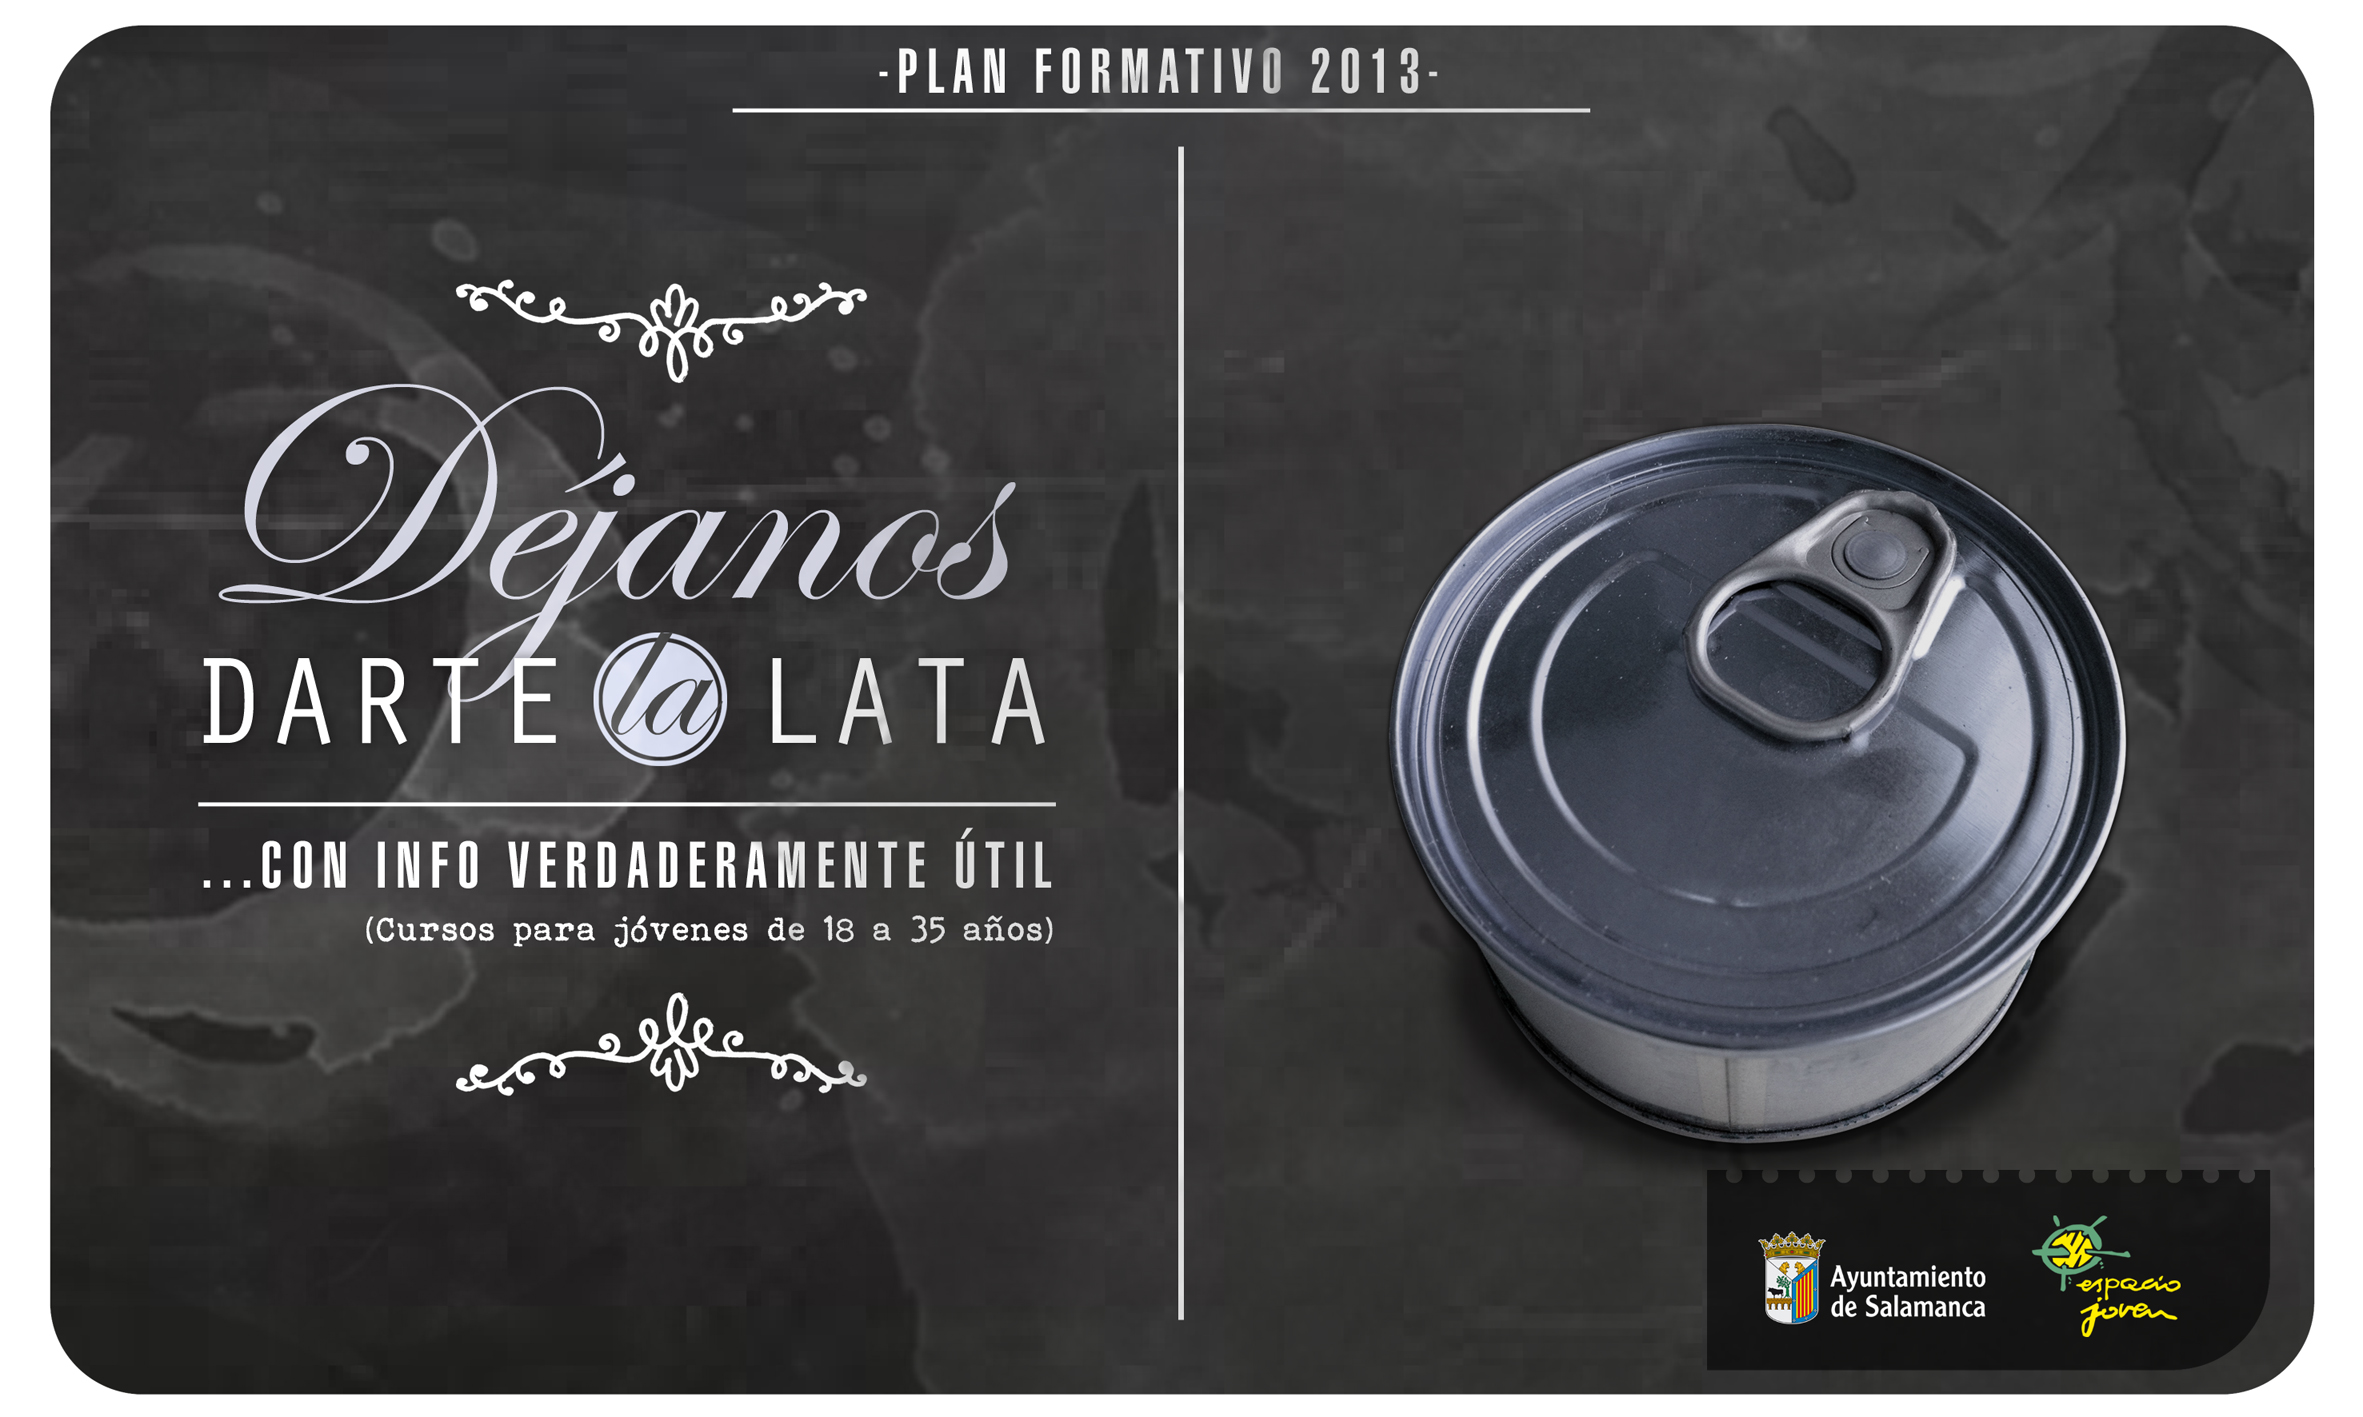 cartel plan formativo 2013